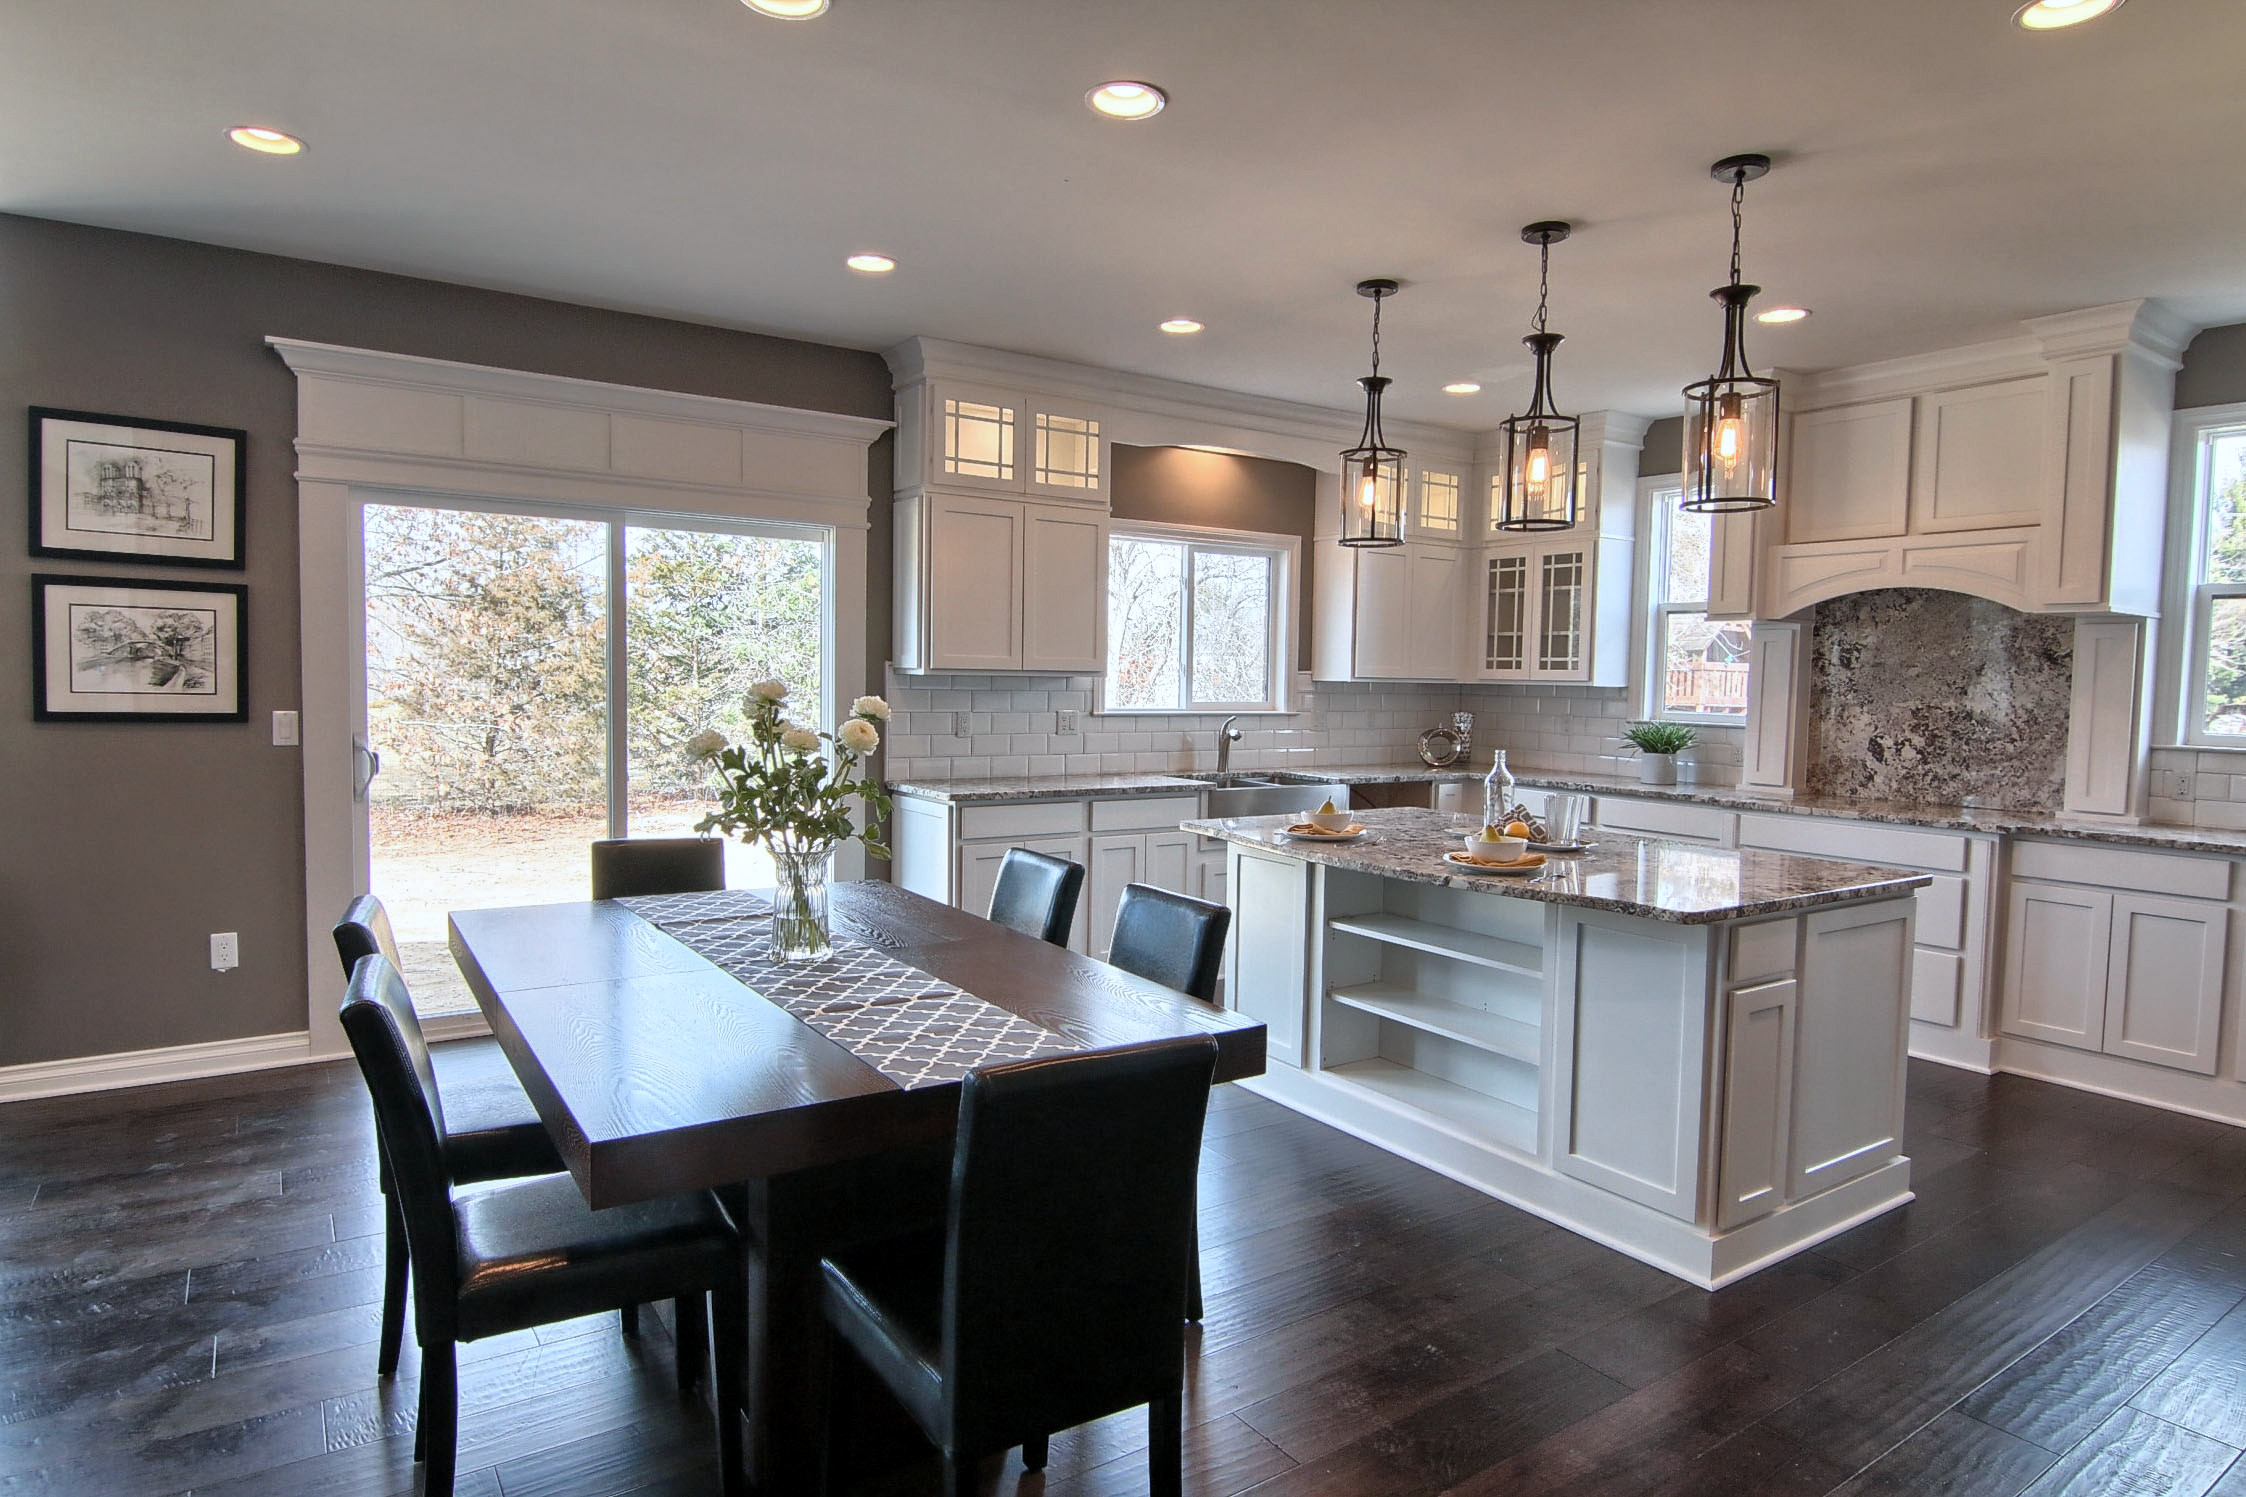 8 Kitchen_And_Breakfast_Nook